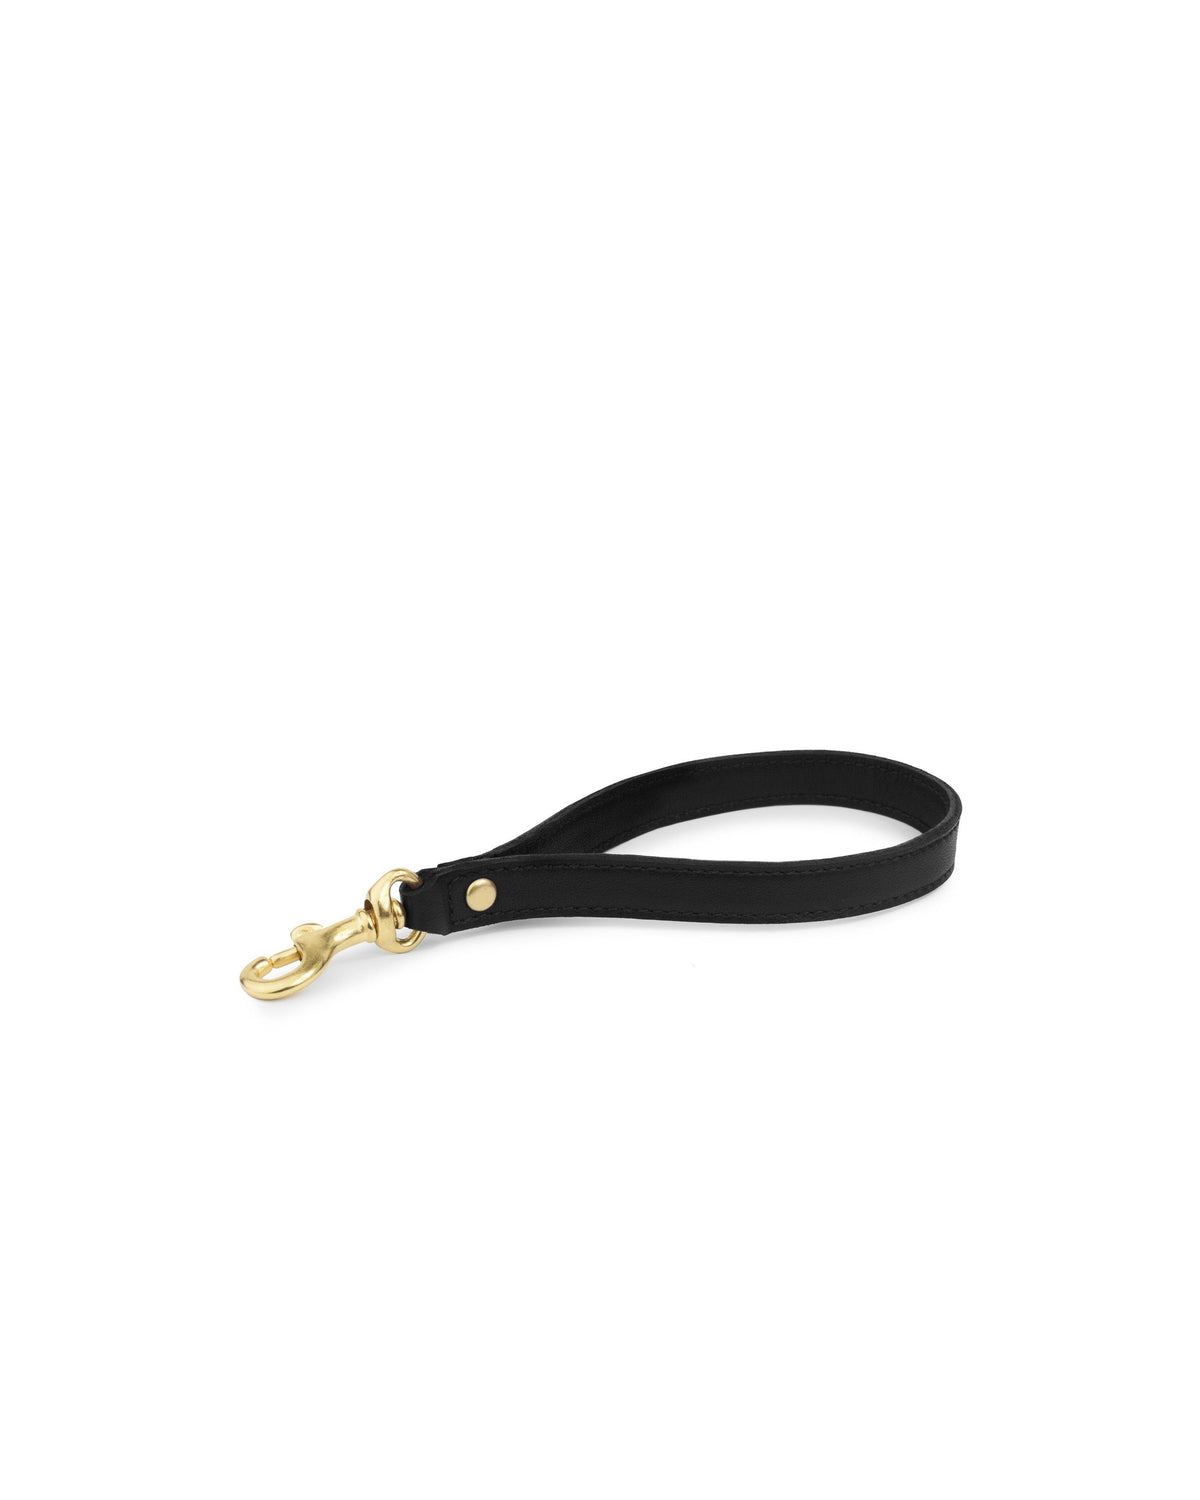 WRIST STRAP in Black Napa